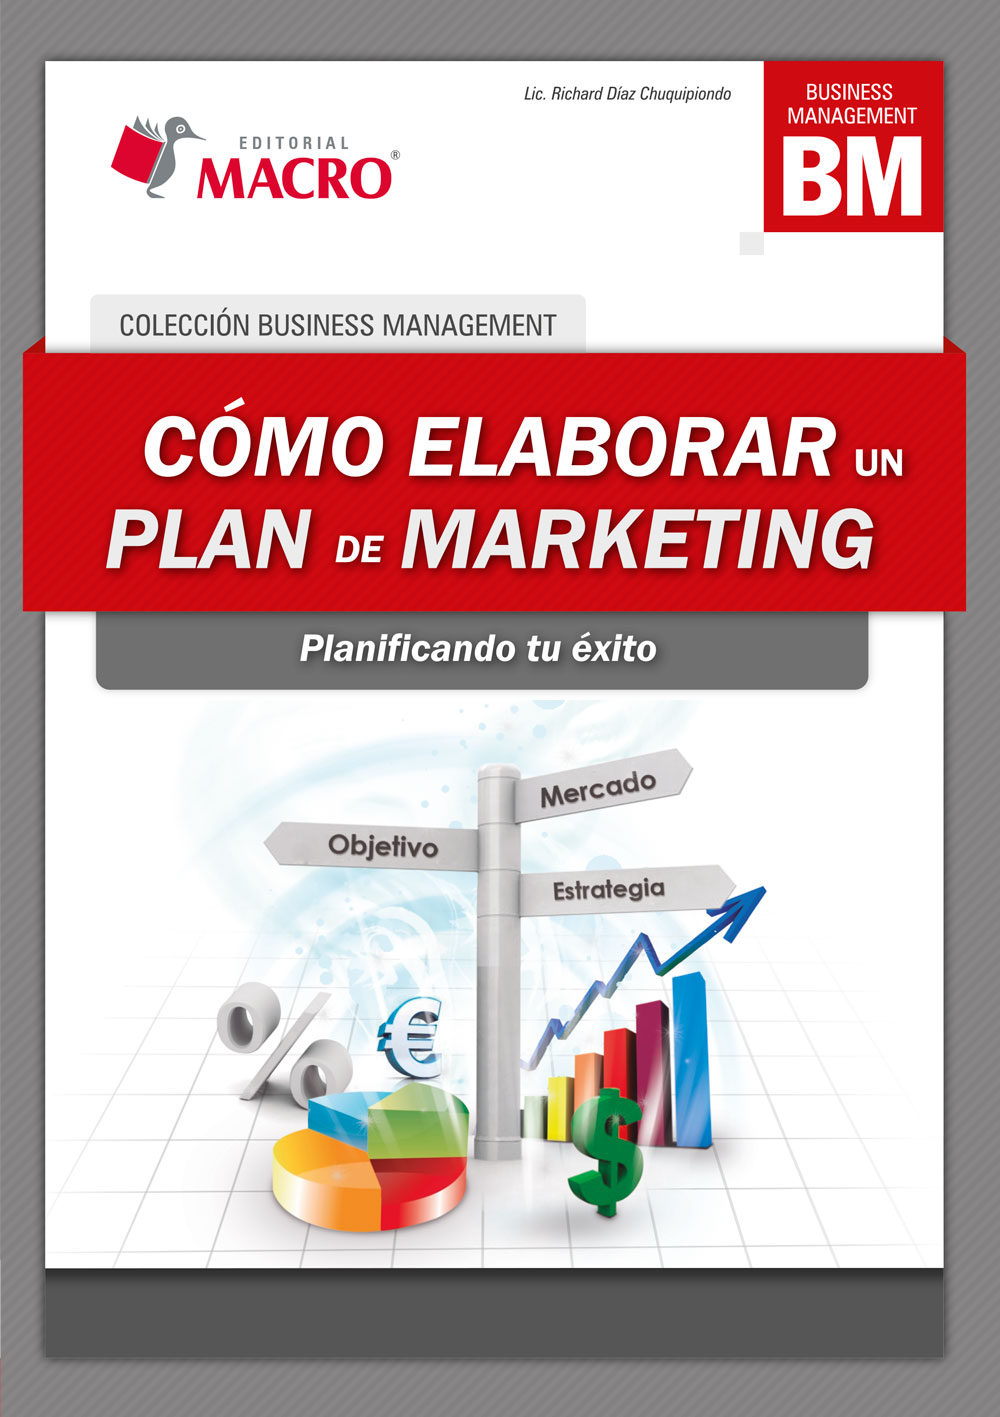 Marketing Farmaceutico Libro CÓmo Elaborar Un Plan De Marketing Ebook Richard Diaz Chuquipiondo Descargar Libro Pdf O Epub 9786123041182